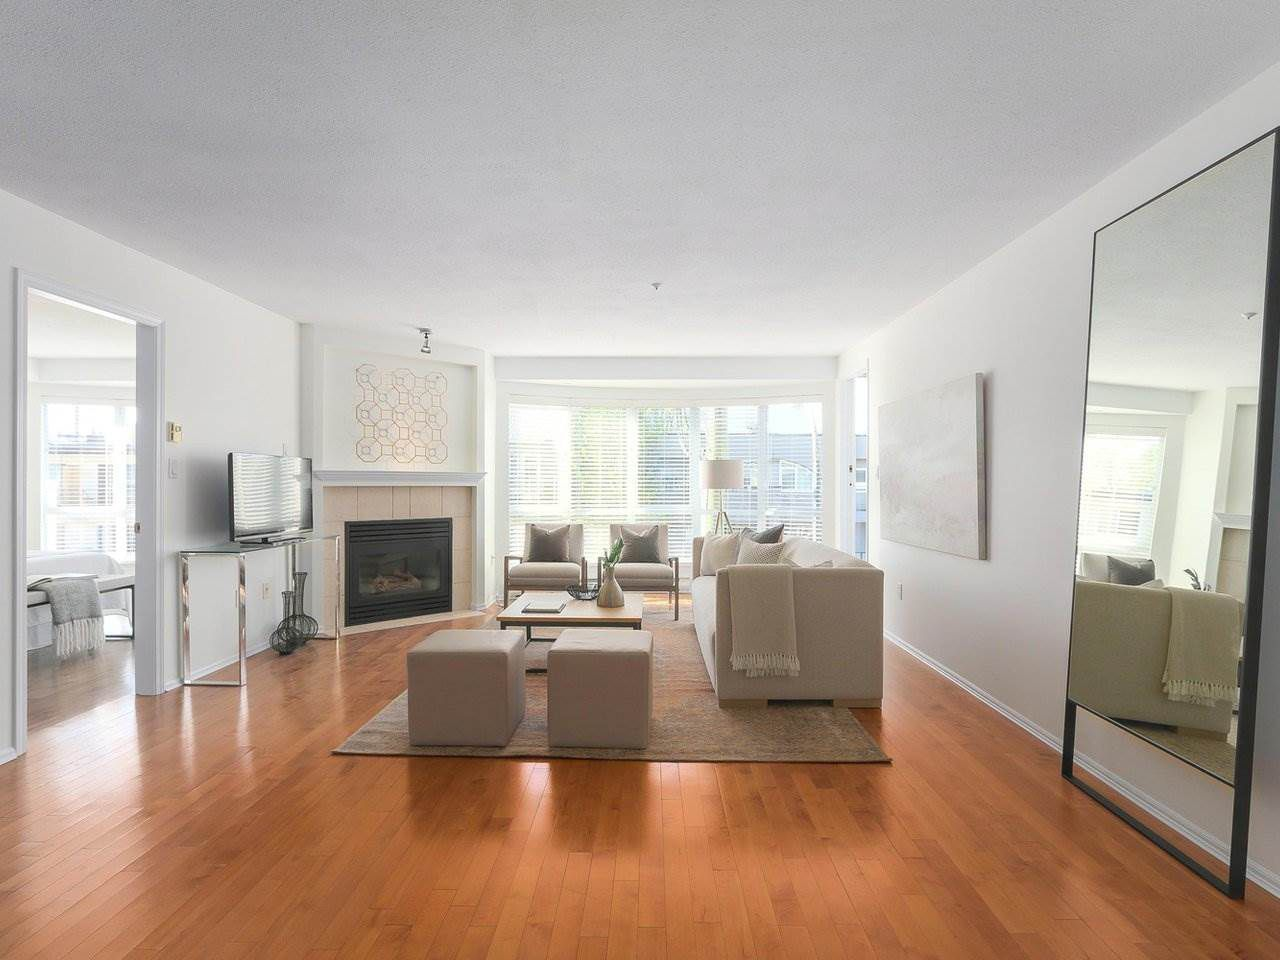 """Main Photo: 312 789 W 16TH Avenue in Vancouver: Fairview VW Condo for sale in """"SIXTEEN WILLOWS"""" (Vancouver West)  : MLS®# R2368634"""